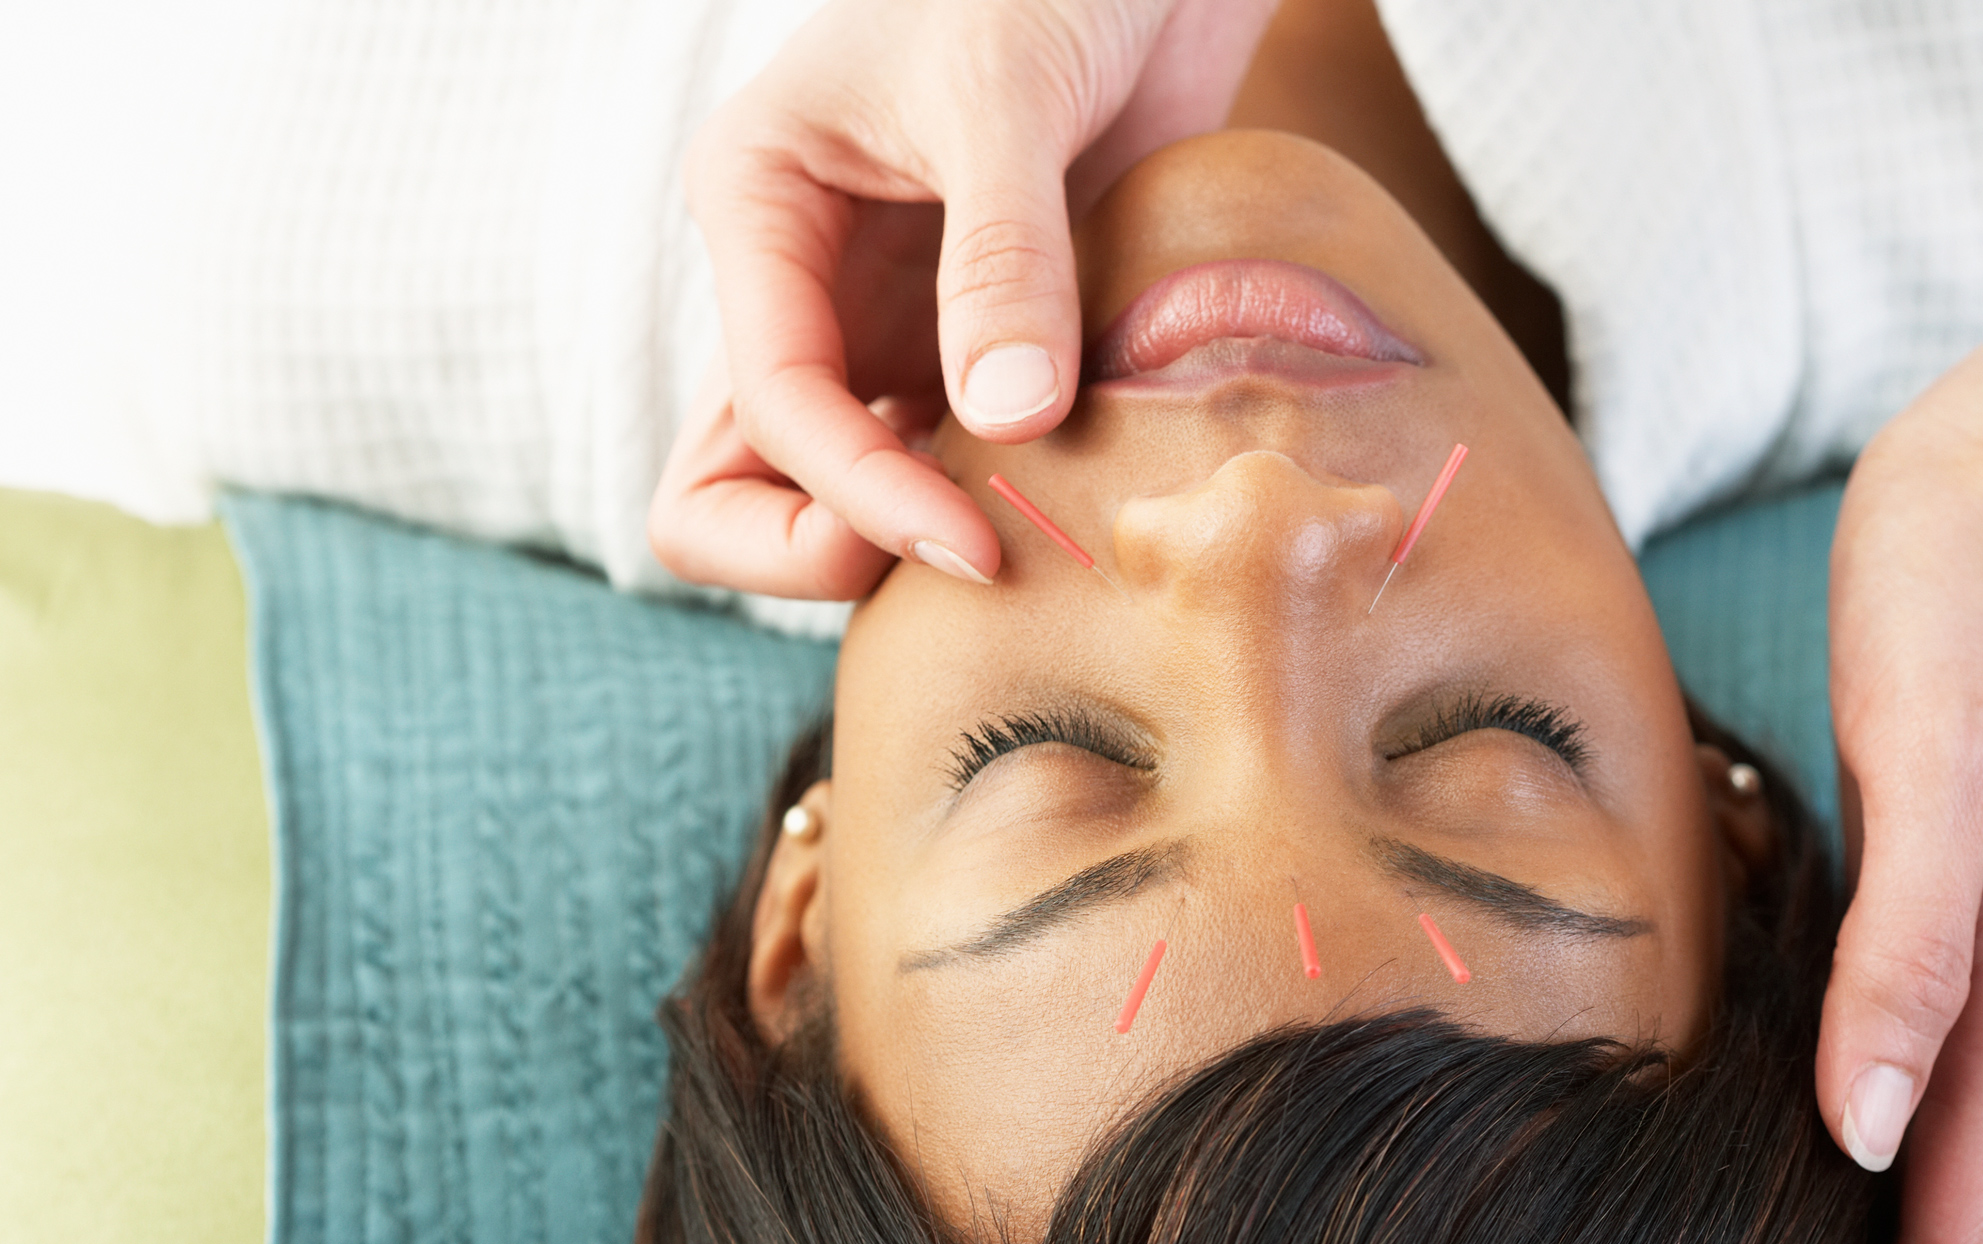 woman getting acupuncture on face